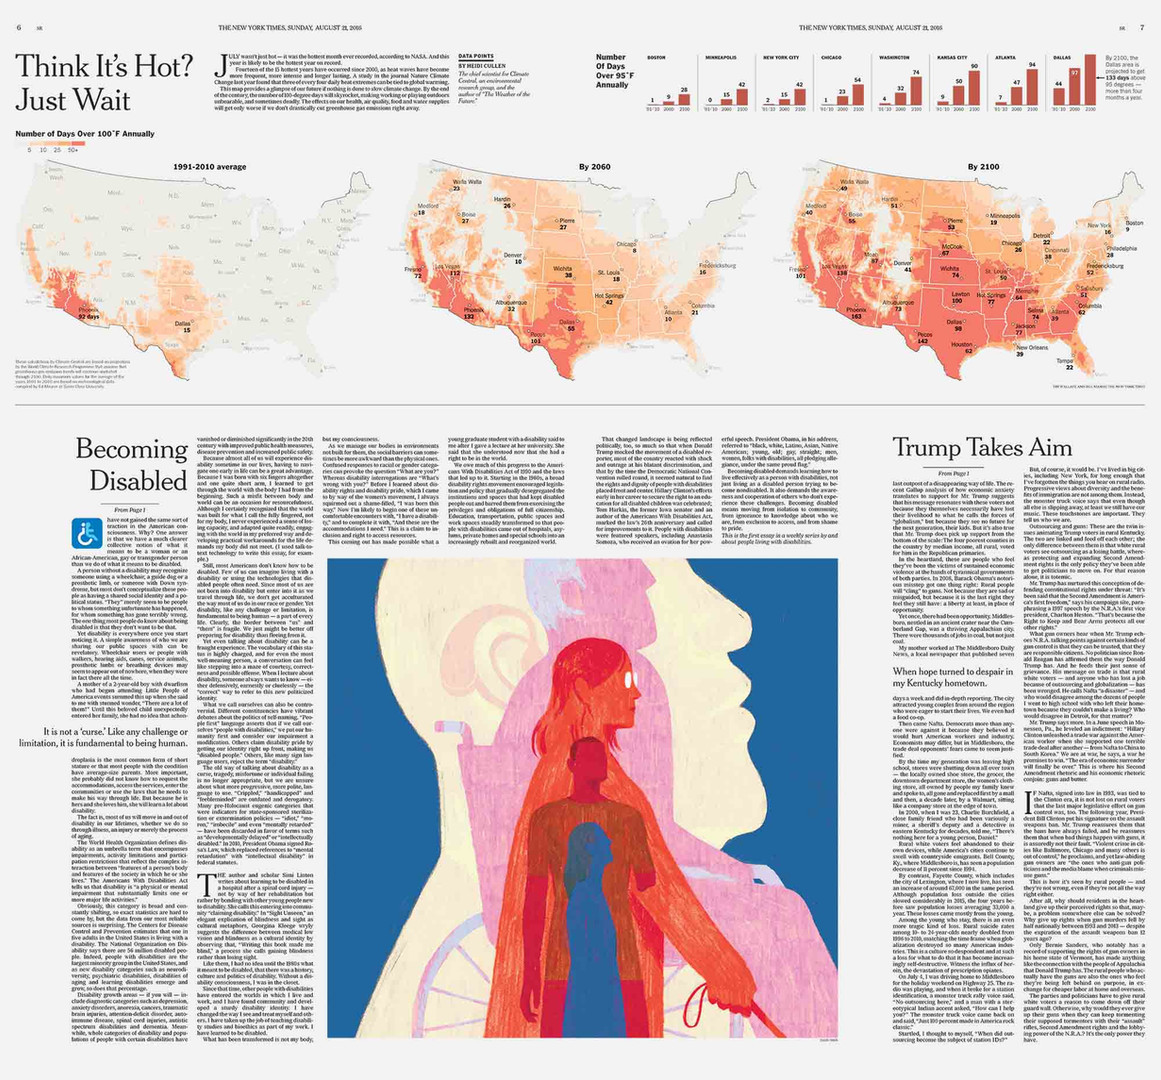 Infographic by The New York Times, illustration by Dadu Shin